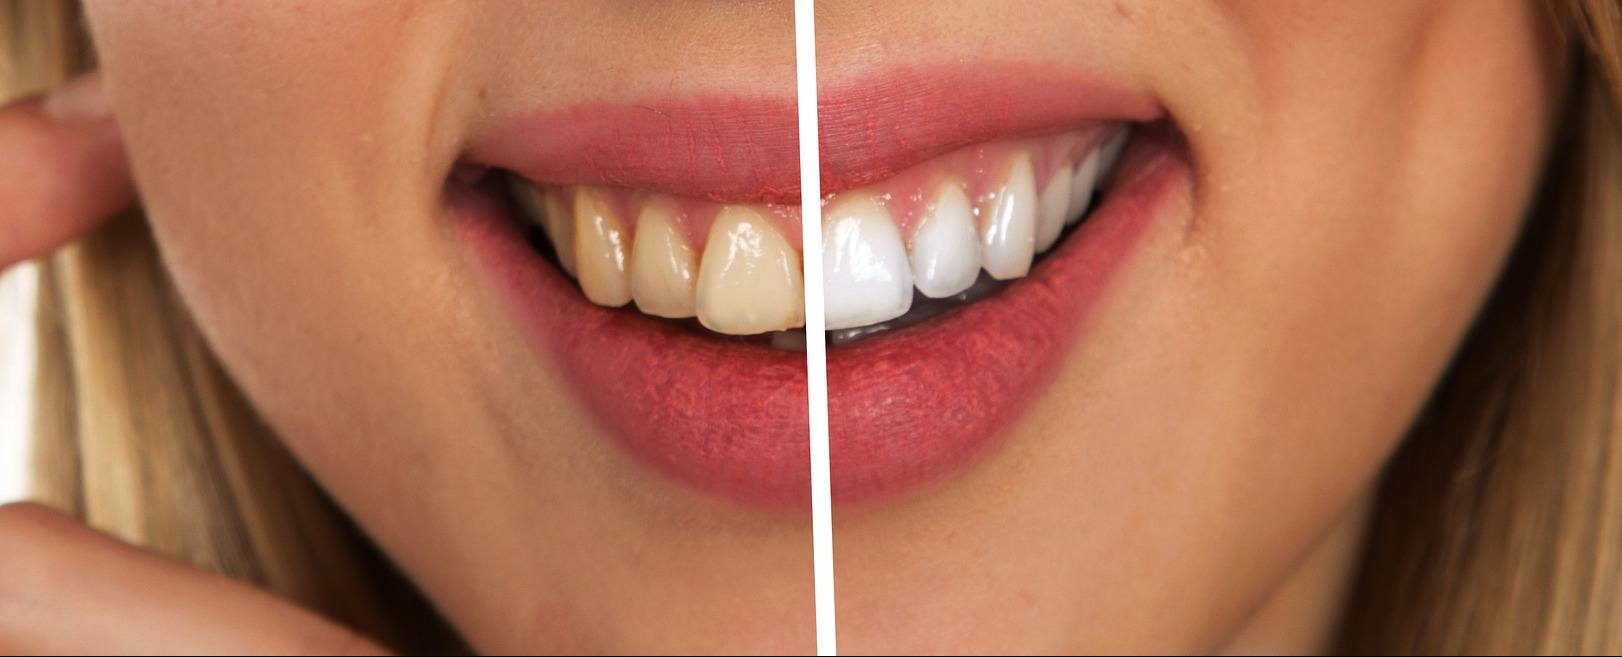 Veneers Teeth Whitening Female Model